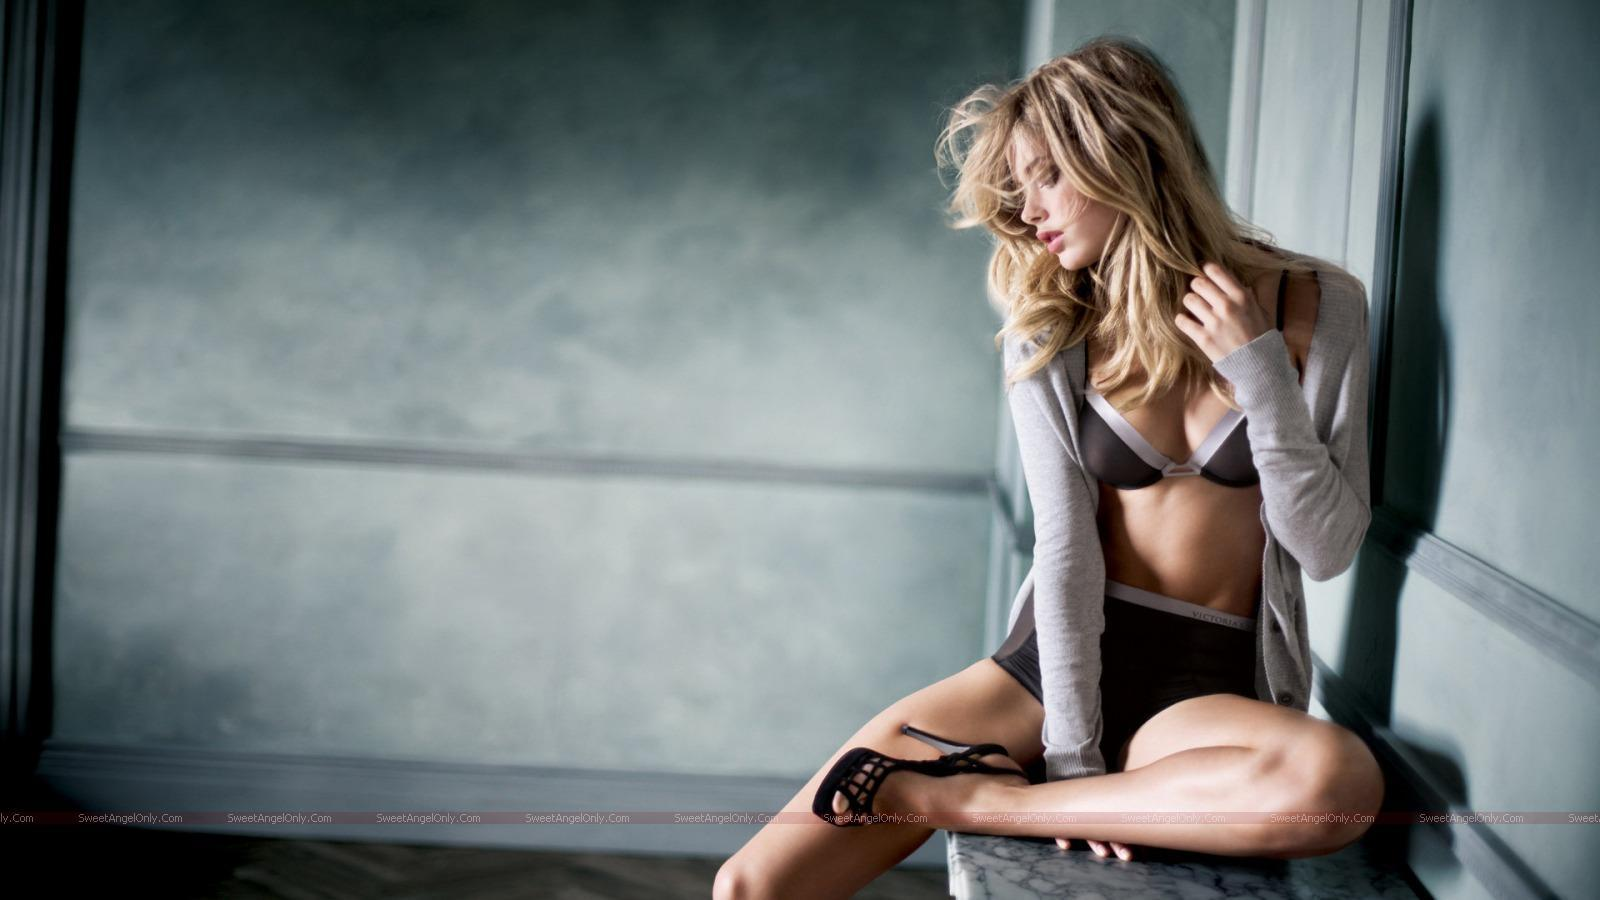 http://4.bp.blogspot.com/_jJPqWg6V3Y8/TTmIzm-utII/AAAAAAAADtE/h8ChunZJCCY/s1600/hollywood_hot_actress_wallpapers_57_01.jpg